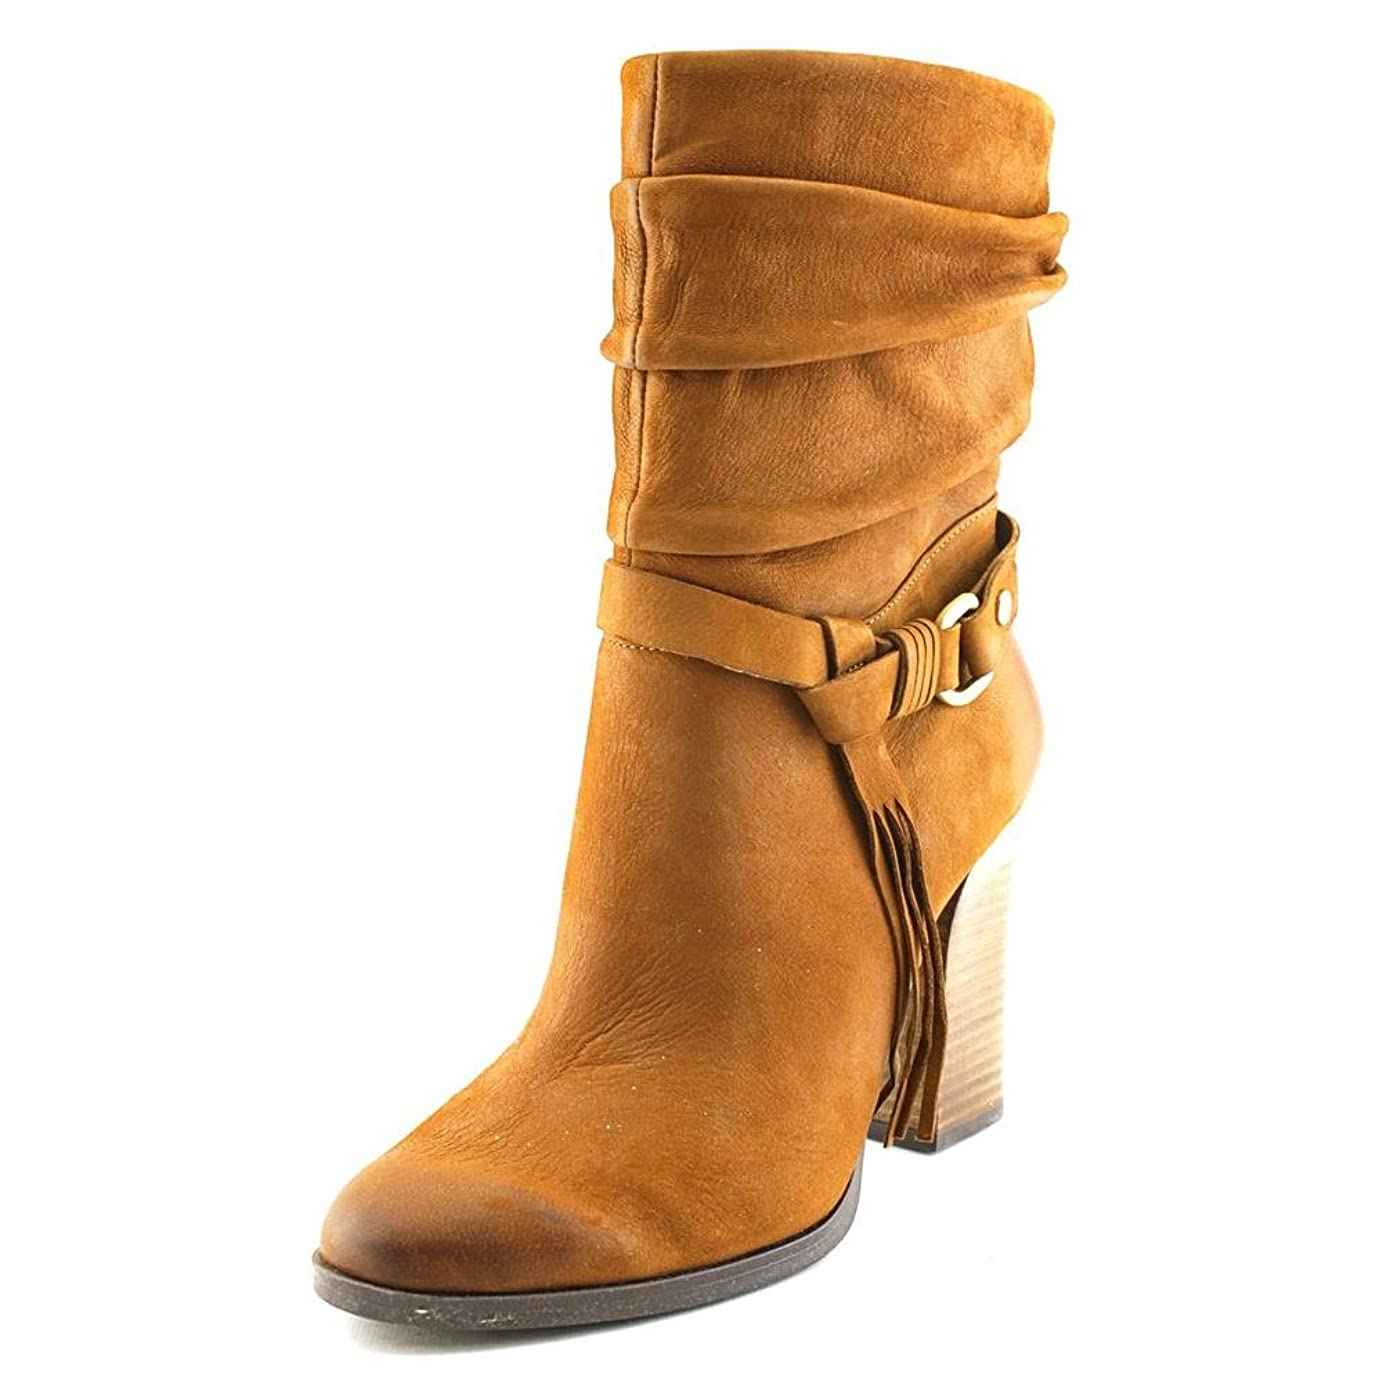 薬を飲む多くの危険がある状況寺院Guess Womens Tamsin Almond Toe Leather Fashion Boots